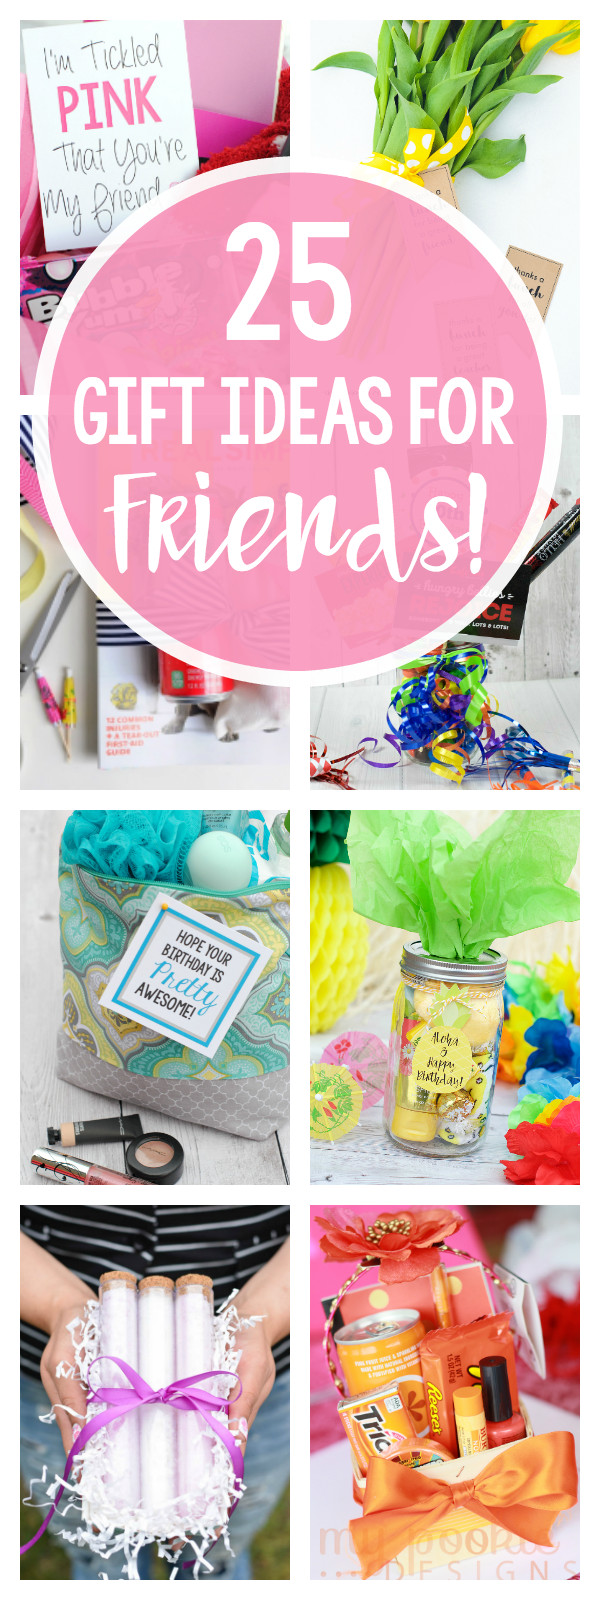 Bday Gift Ideas For Best Friend  25 Fun Gifts for Best Friends for Any Occasion – Fun Squared